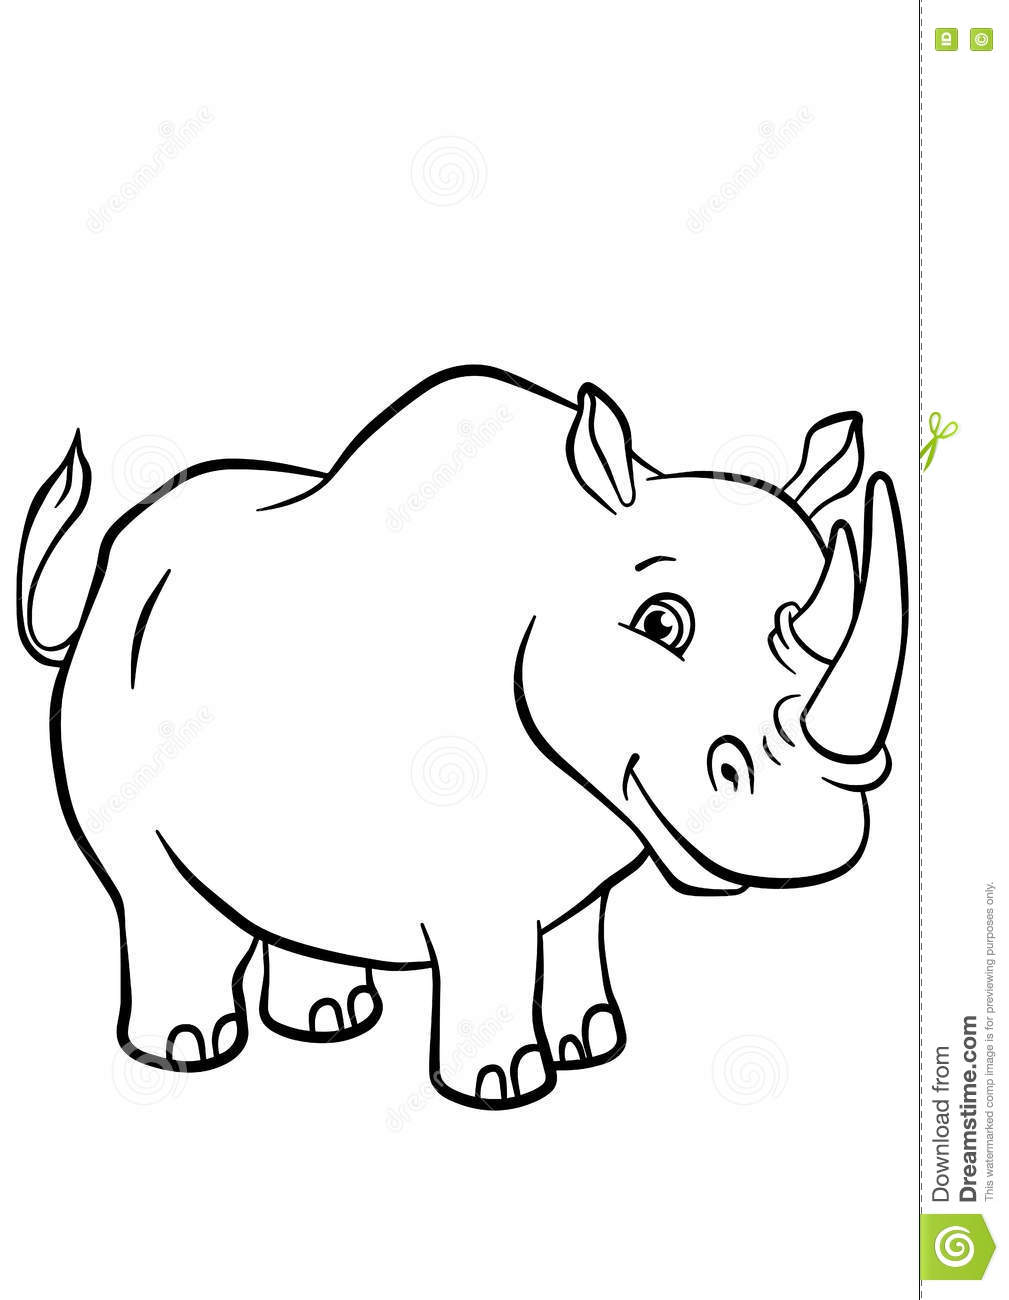 coloring pages animals cute rhinoceros stock vector image